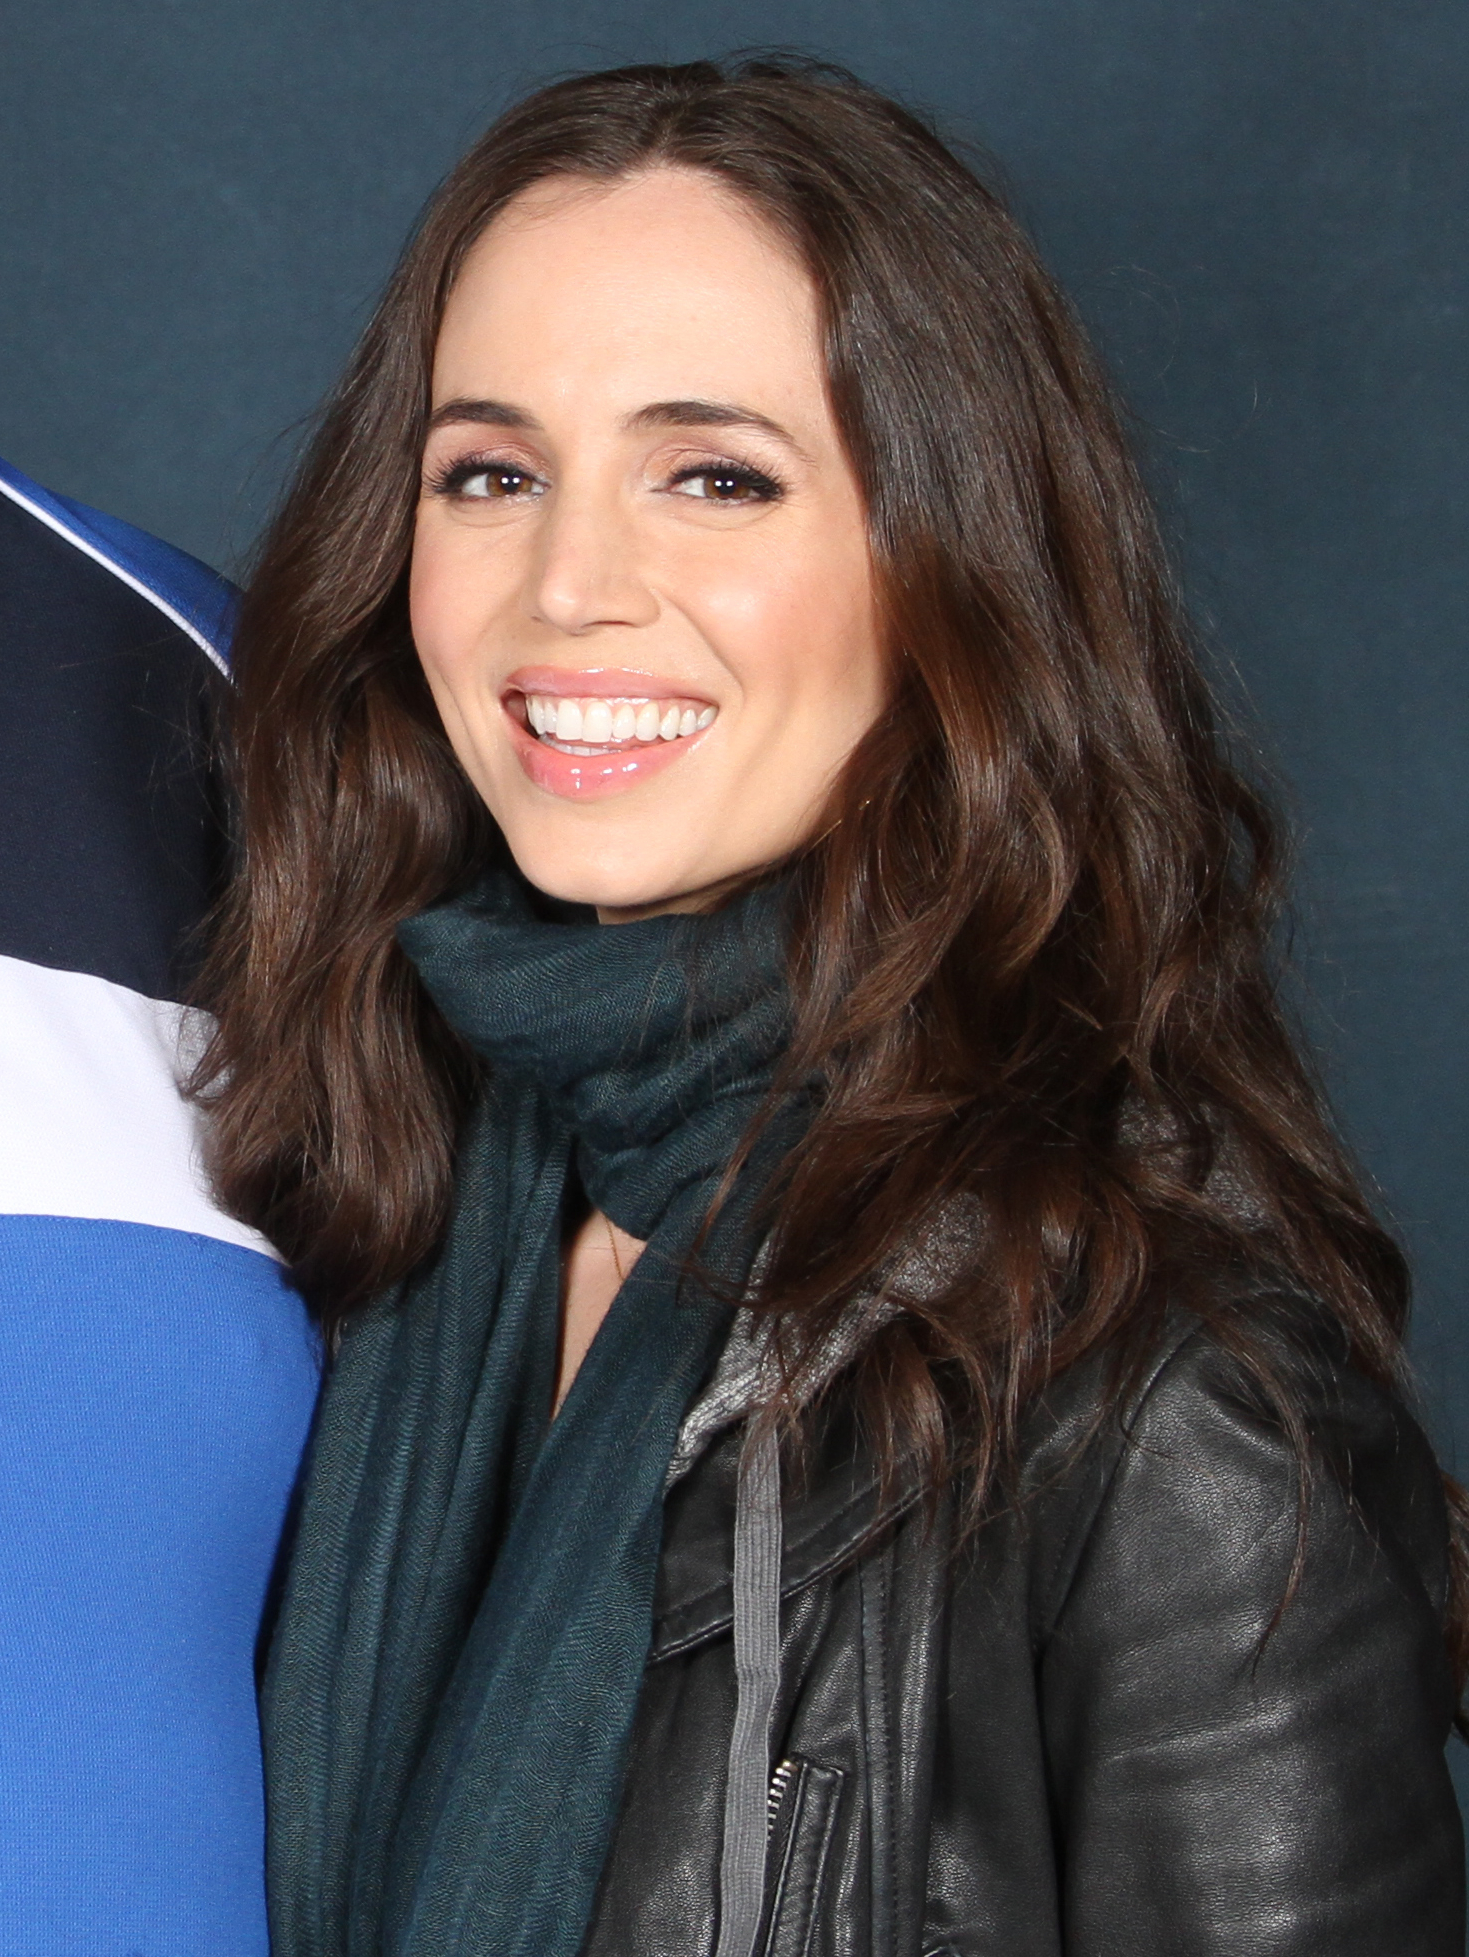 The 37-year old daughter of father Philip R. Dushku and mother Judith Rasmussen Eliza Dushku in 2018 photo. Eliza Dushku earned a  million dollar salary - leaving the net worth at 10 million in 2018